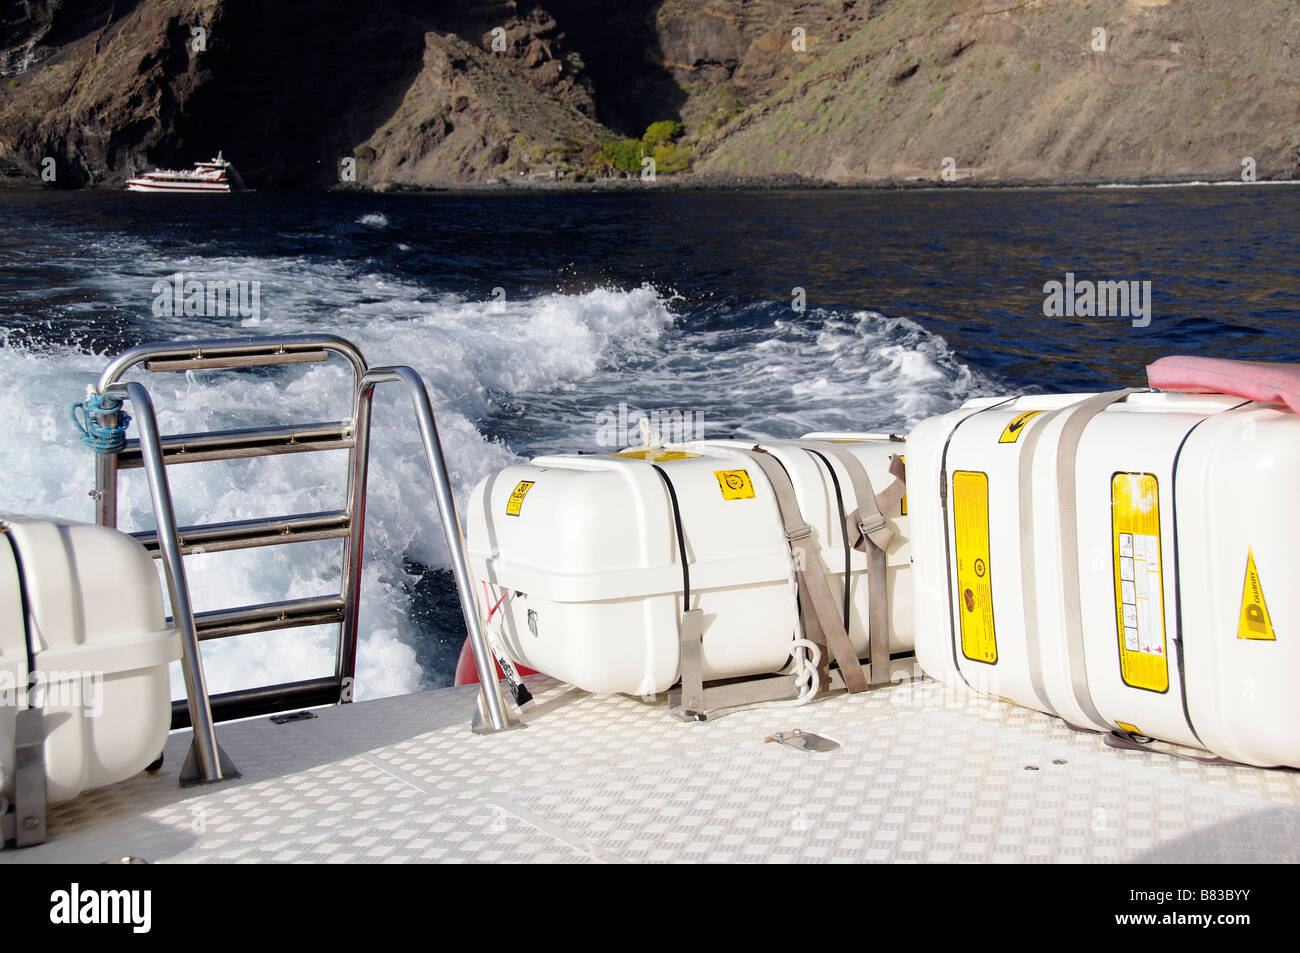 Marine safety equipment stowed on the deck of a fast tourist boat - Stock Image